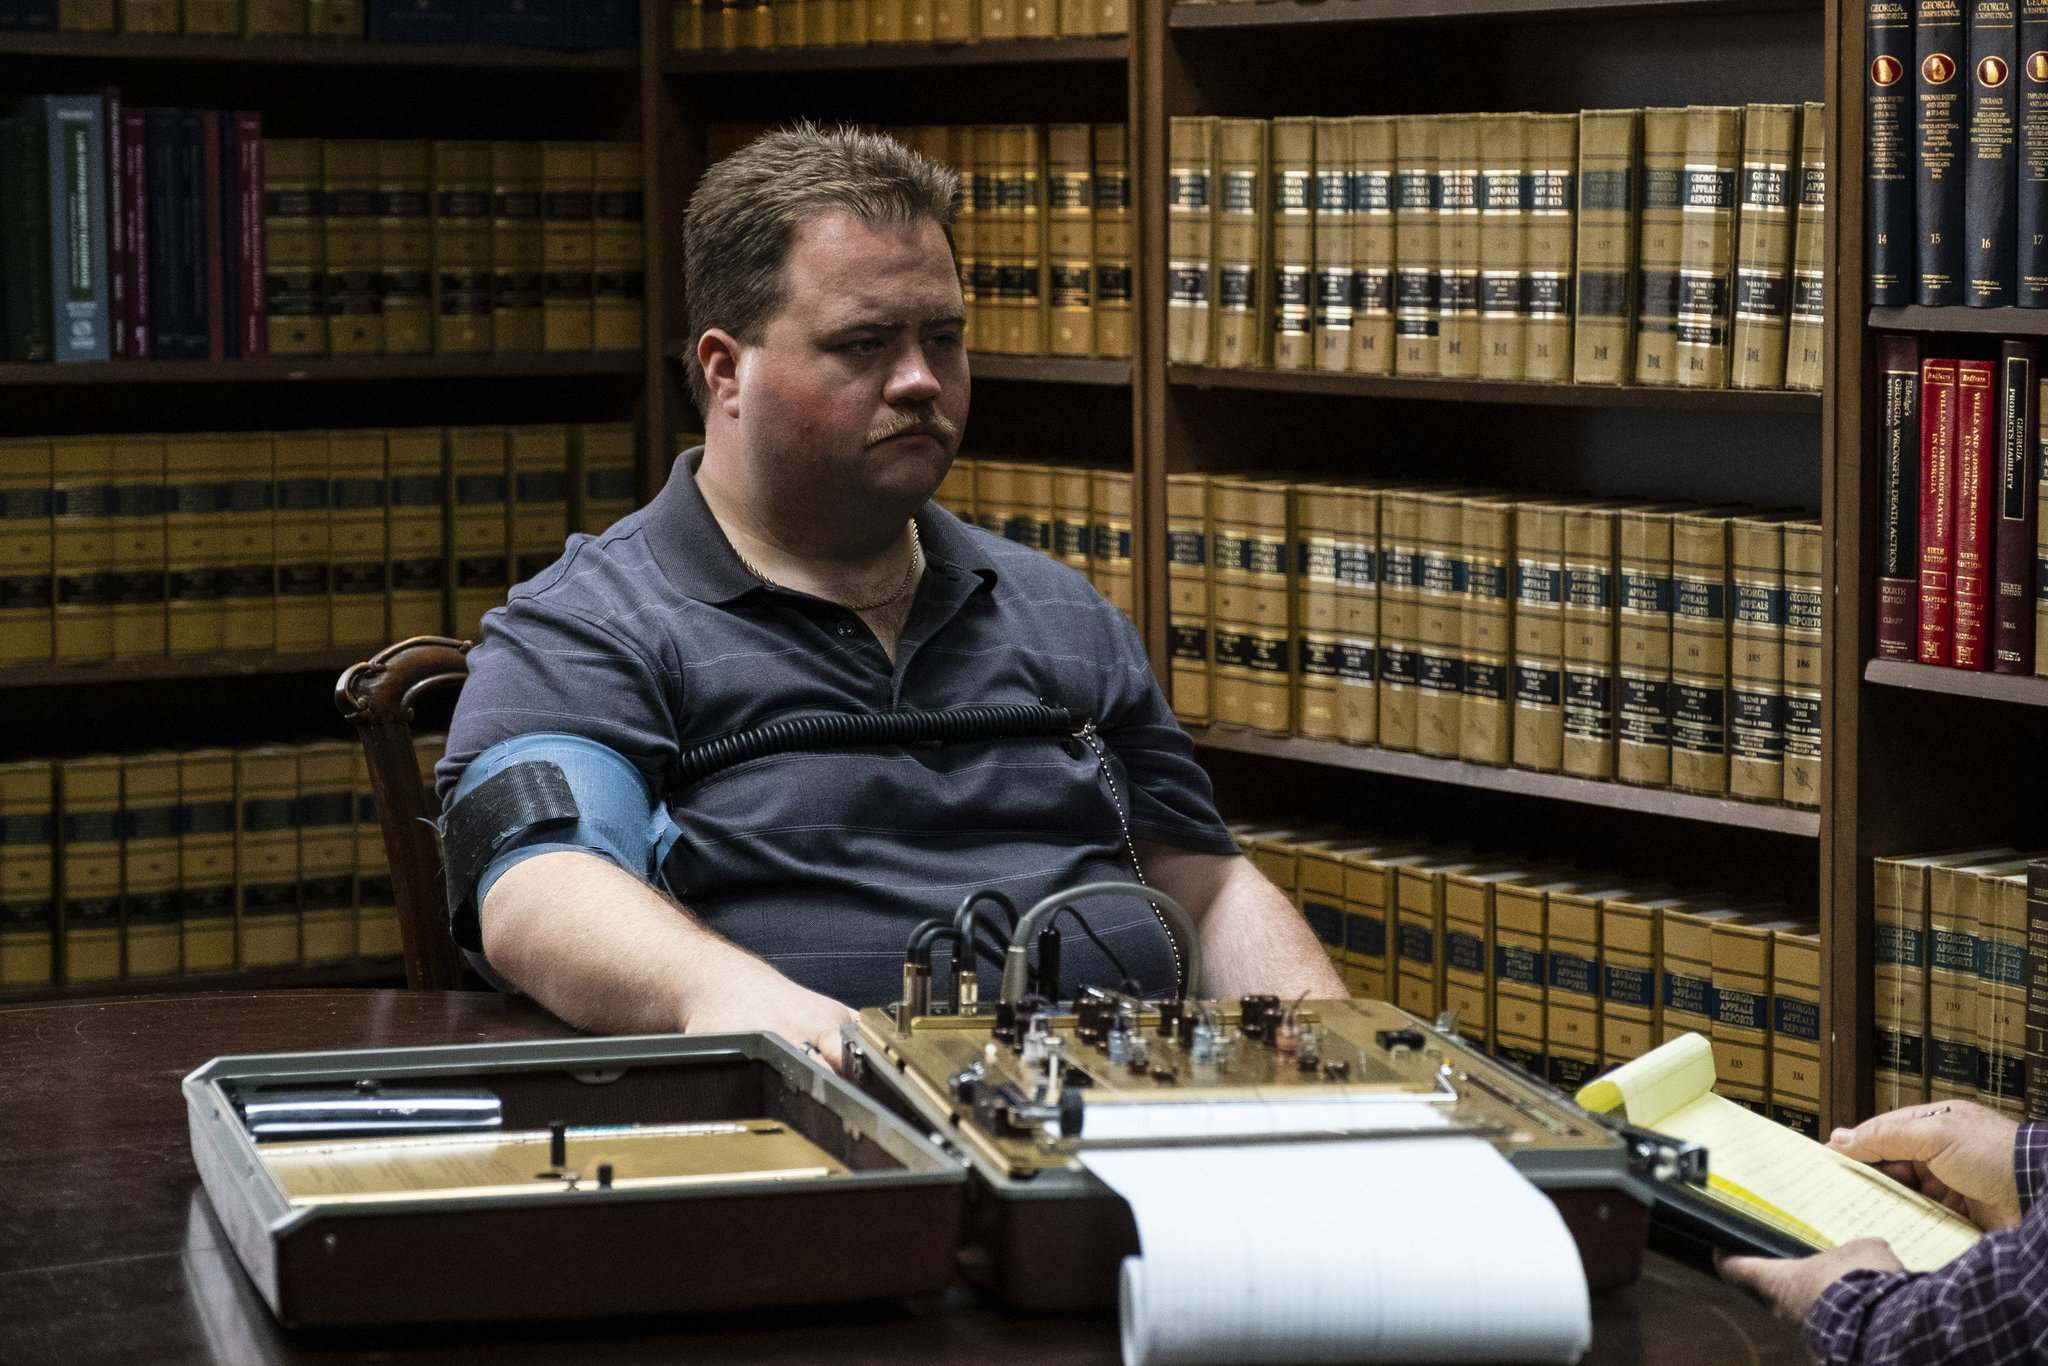 Jewell (Paul Walter Hauser) initially comes off as an irritating know-it-all, a bit rigid and a little odd, but as events close in, he opens up to show his eagerness and vulnerability. (Claire Folger / Warner Bros. Pictures)